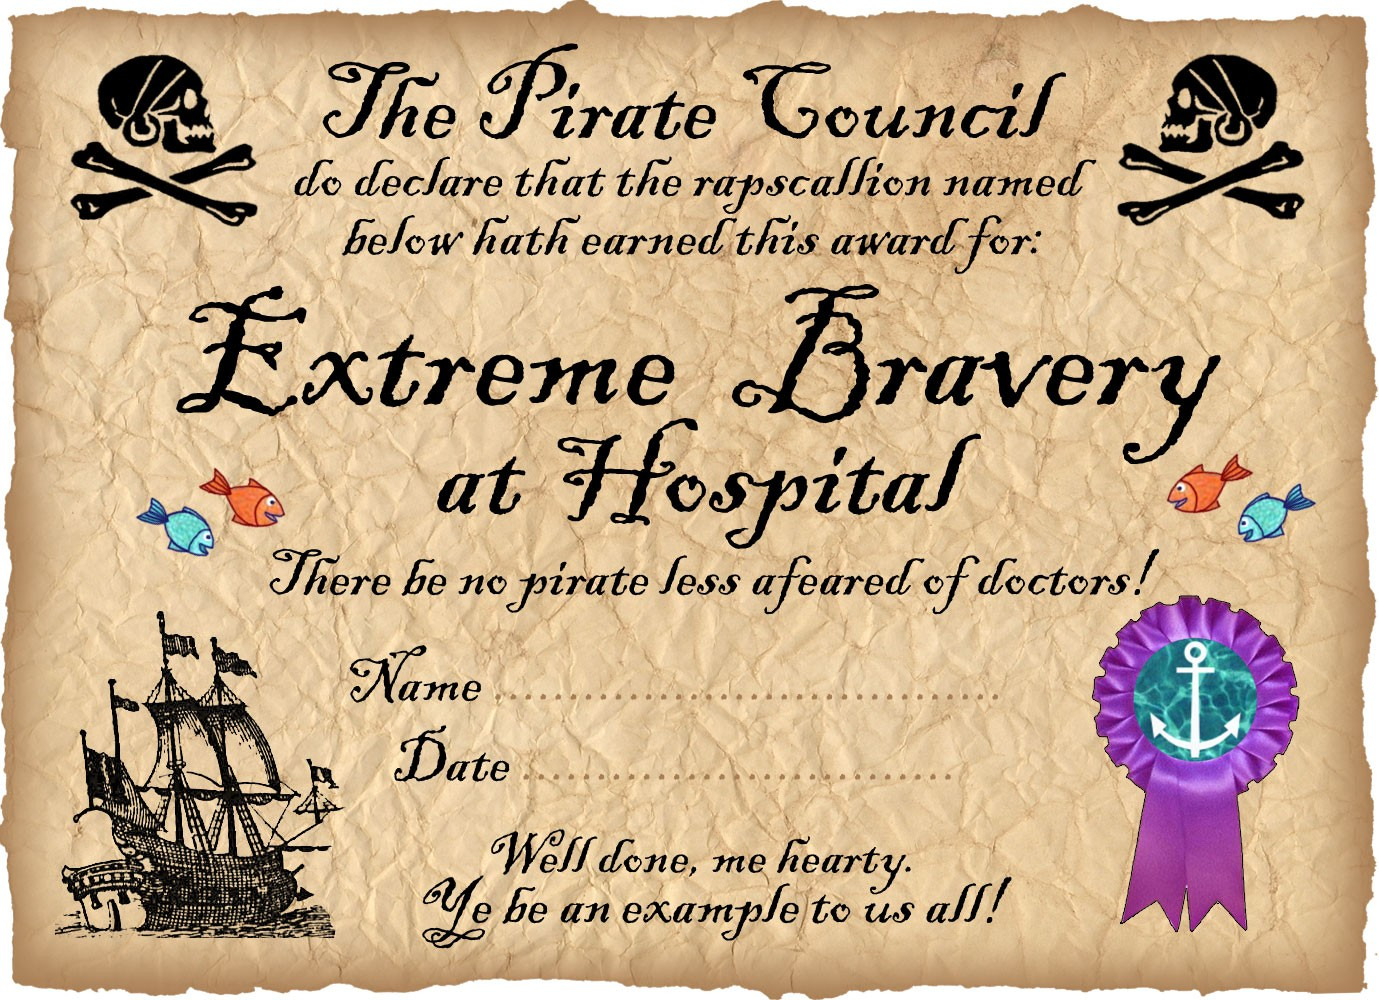 Pirate Certificate Award For Bravery In Hospital